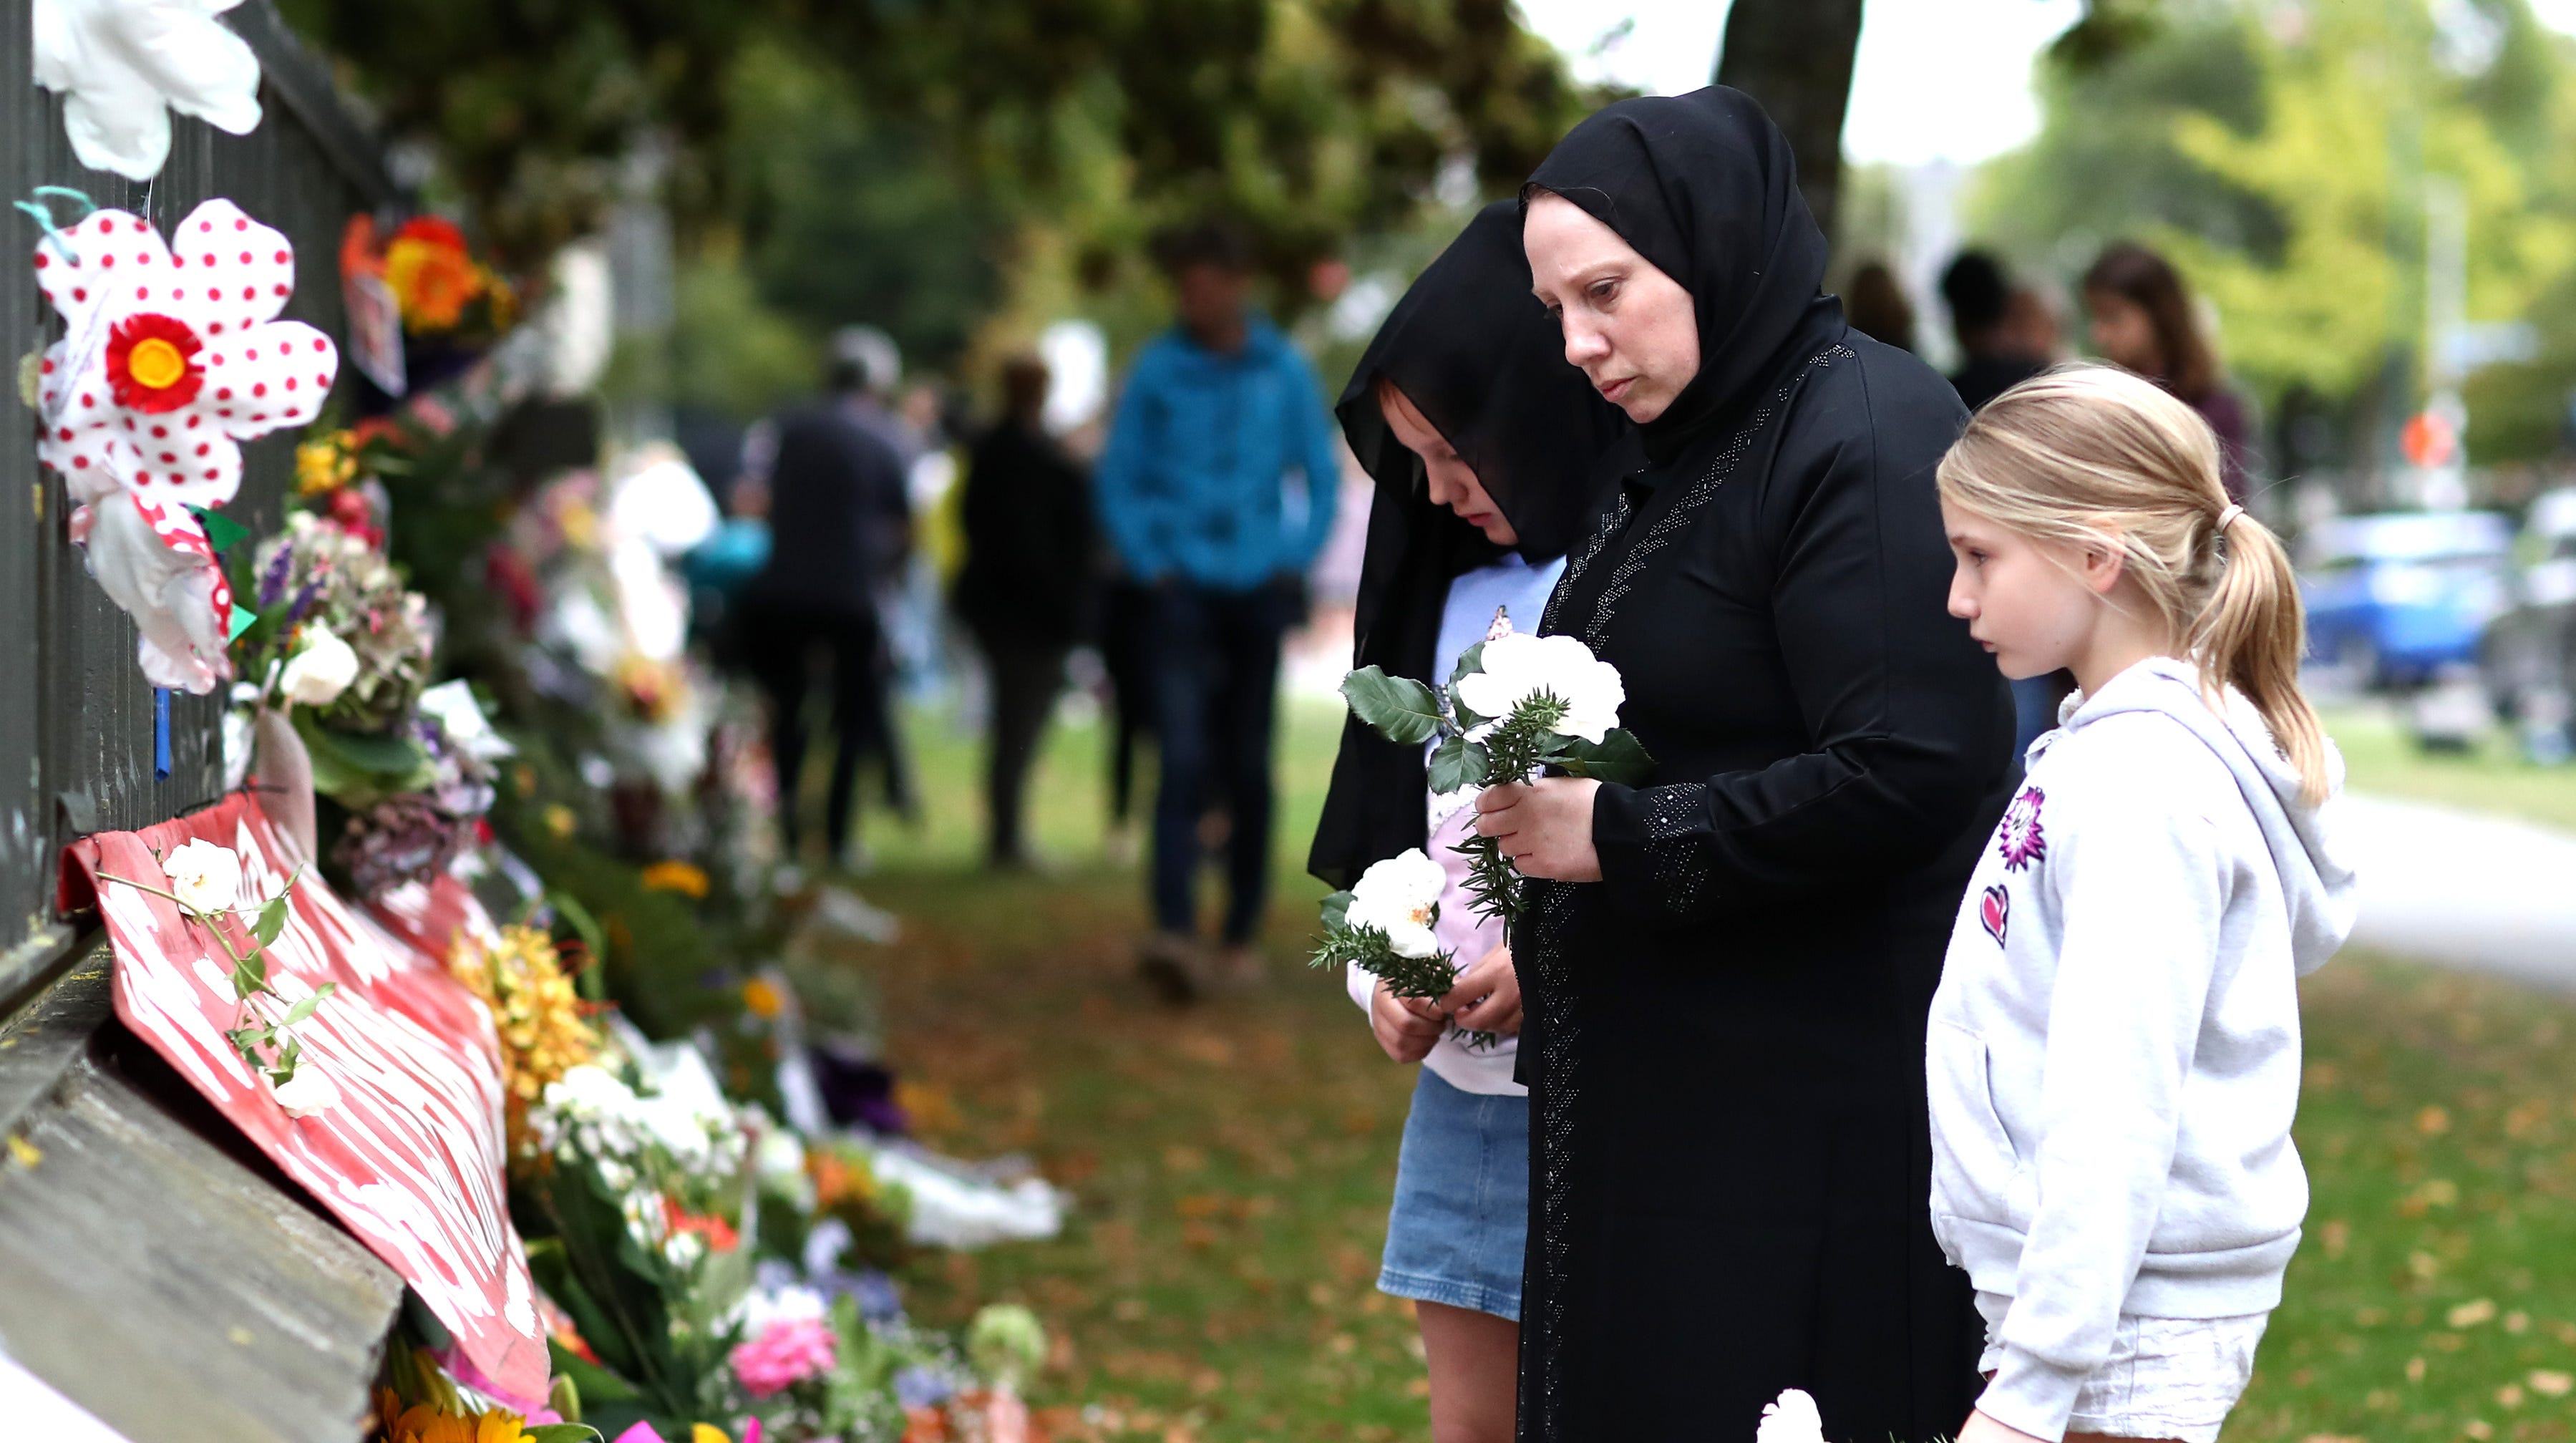 Christchurch Shootings Leave 49 People Dead After Attacks: New Zealand Christchurch Attack: Jacinda Ardern Vows